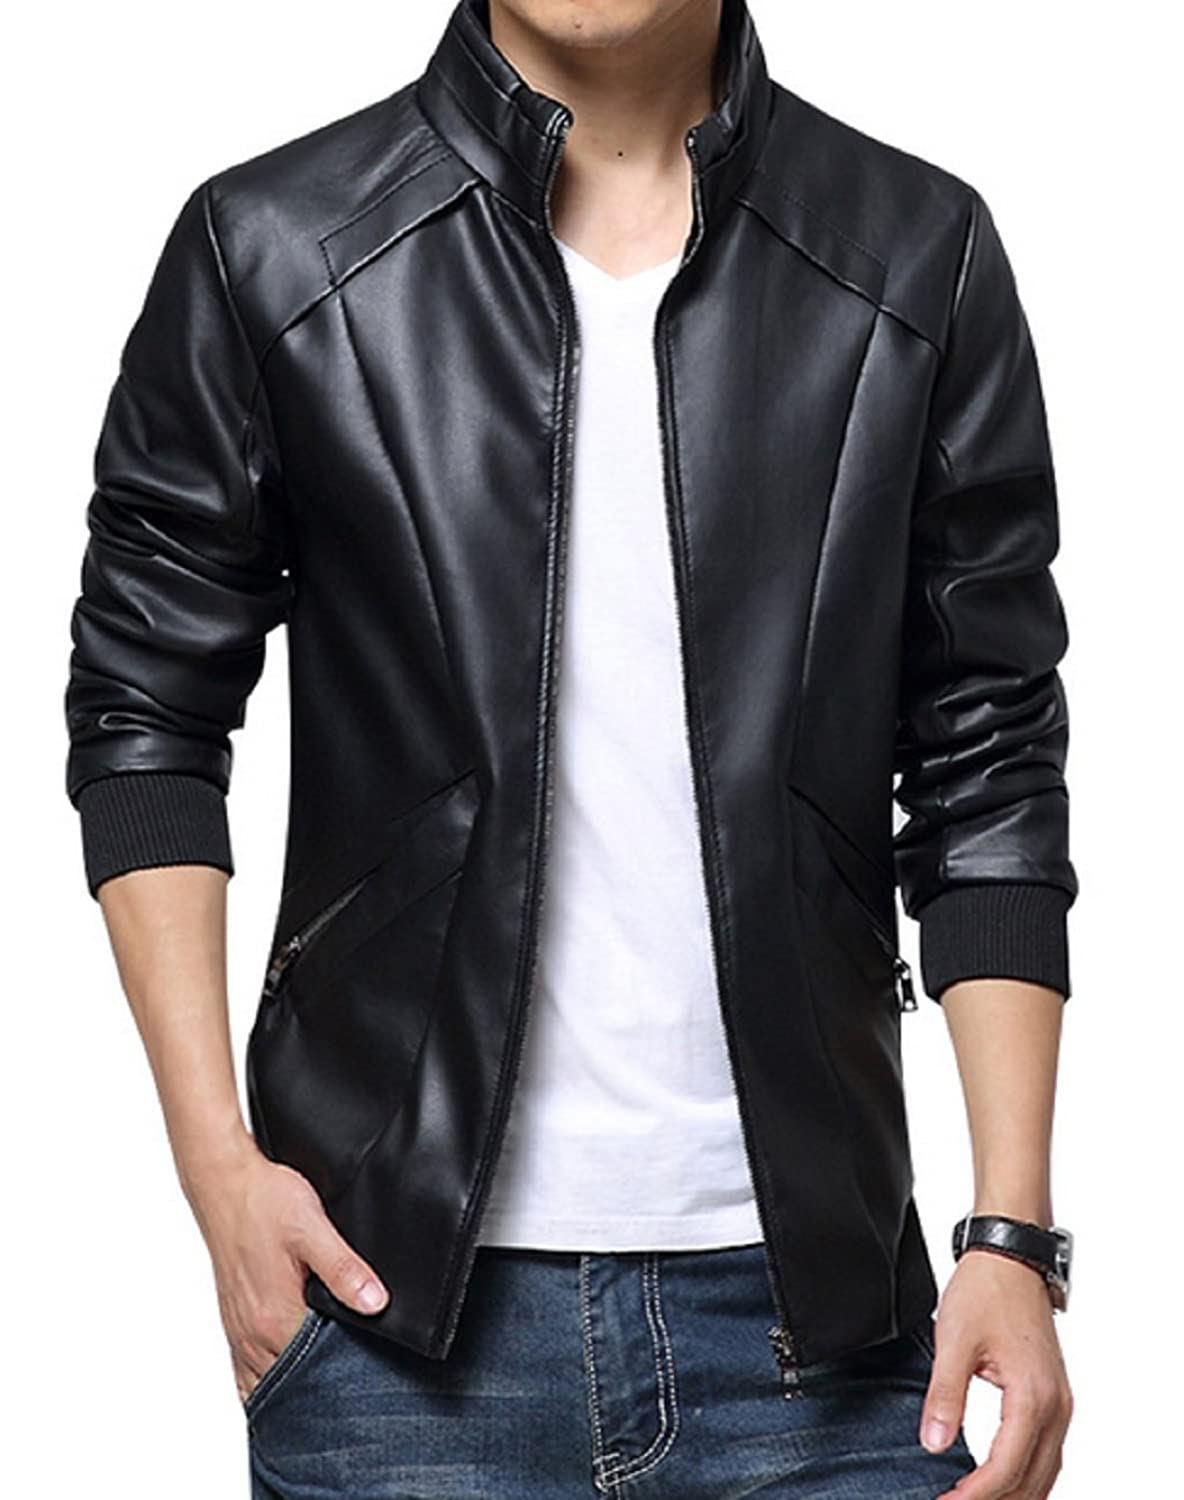 KIWEN Men's Stand Up Collar Faux Leather Jacket Slim Fit at Amazon ...